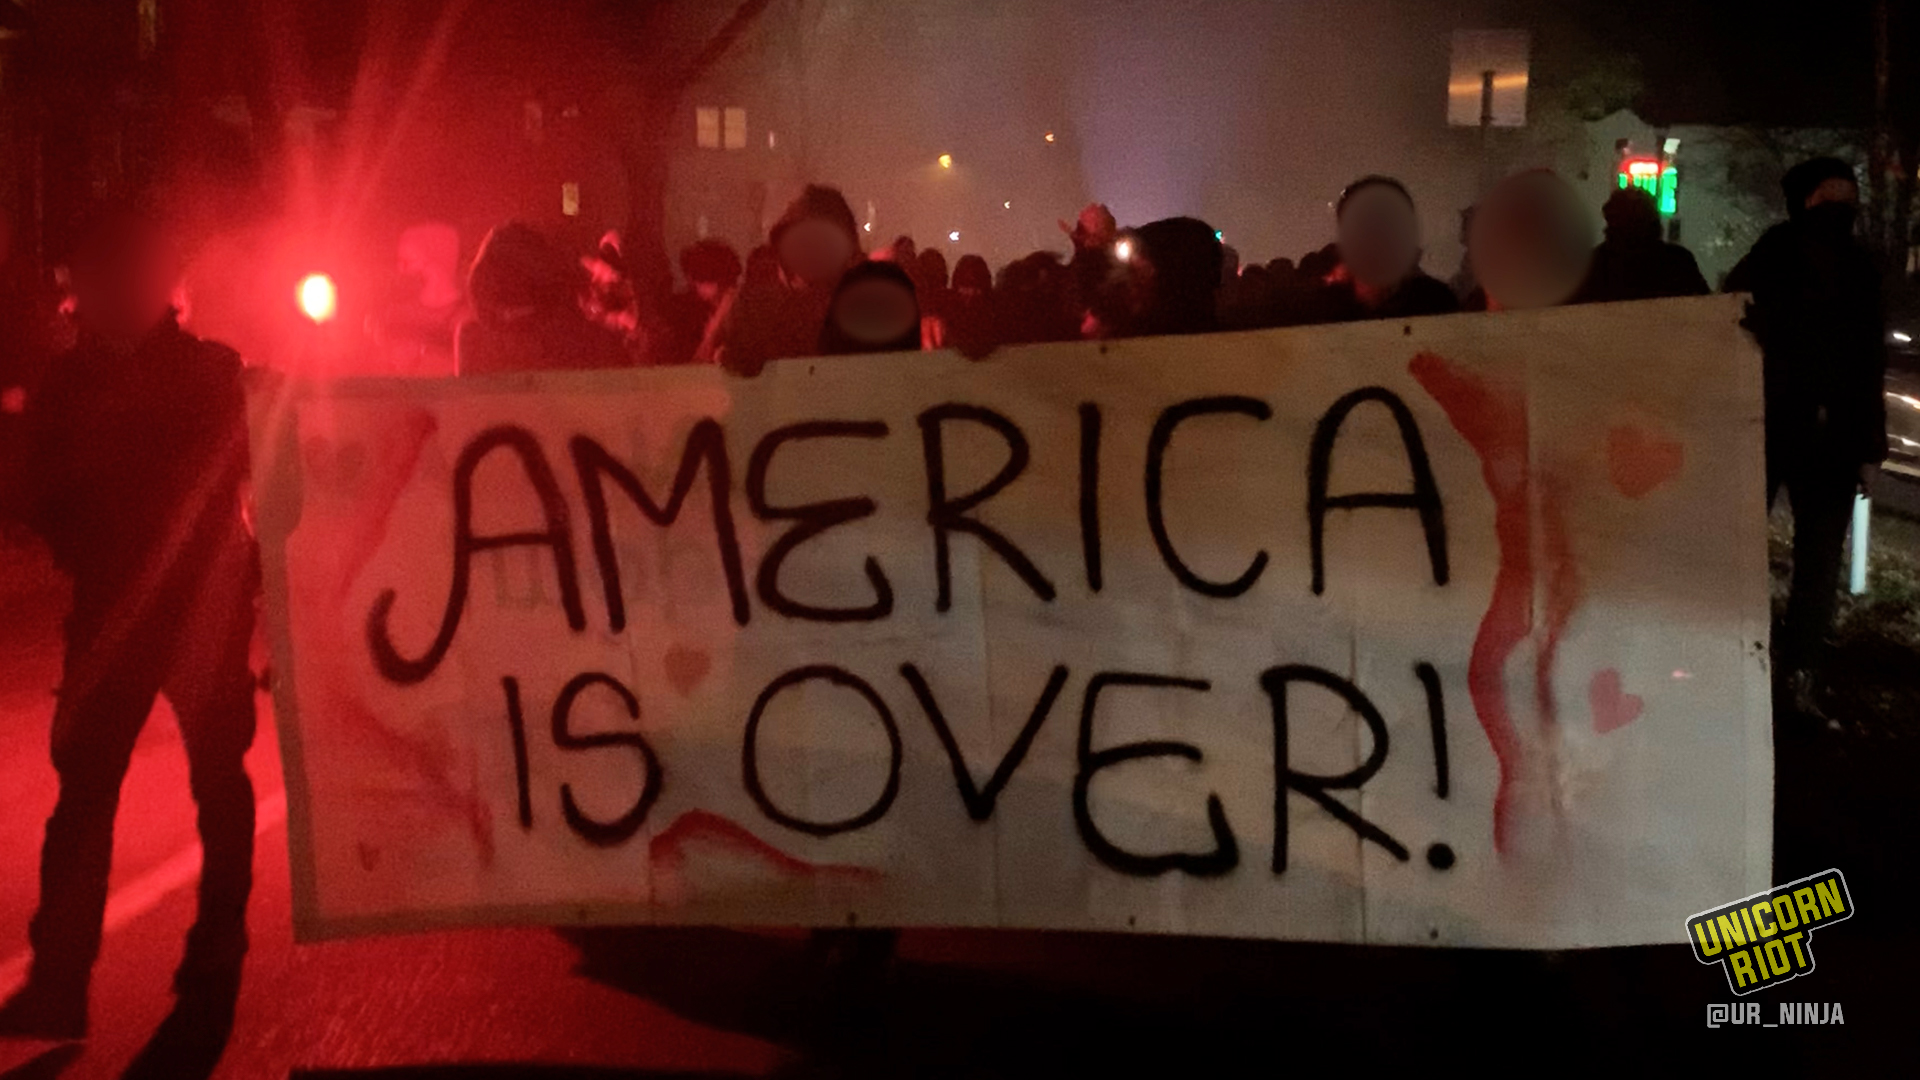 America is Over! banner led mobile dance party